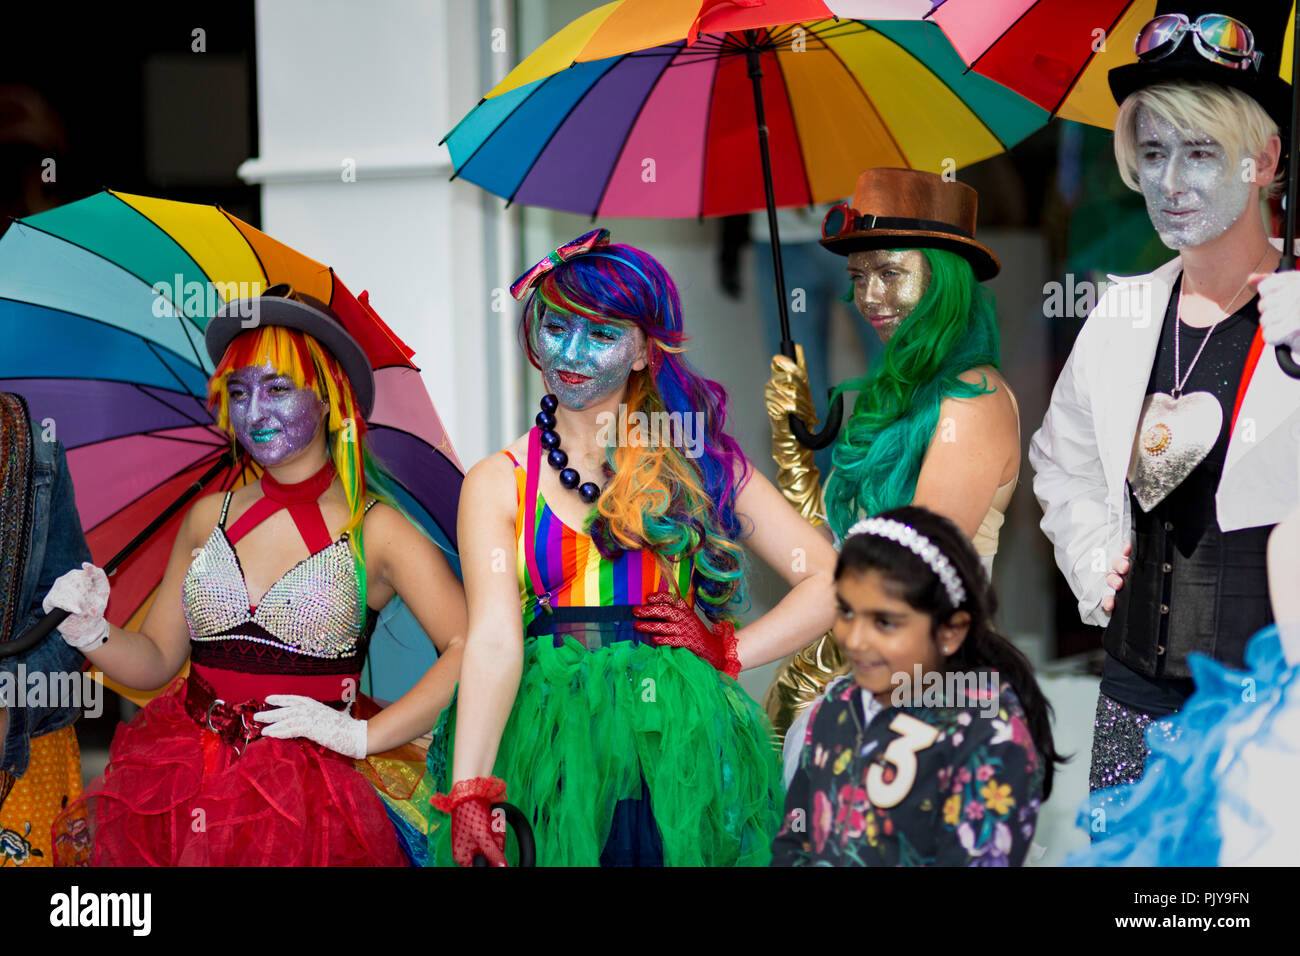 Cardiff, UK. August 2018. A display of brightly dressed and colourful street performers during this years Pride Cymru event. - Stock Image